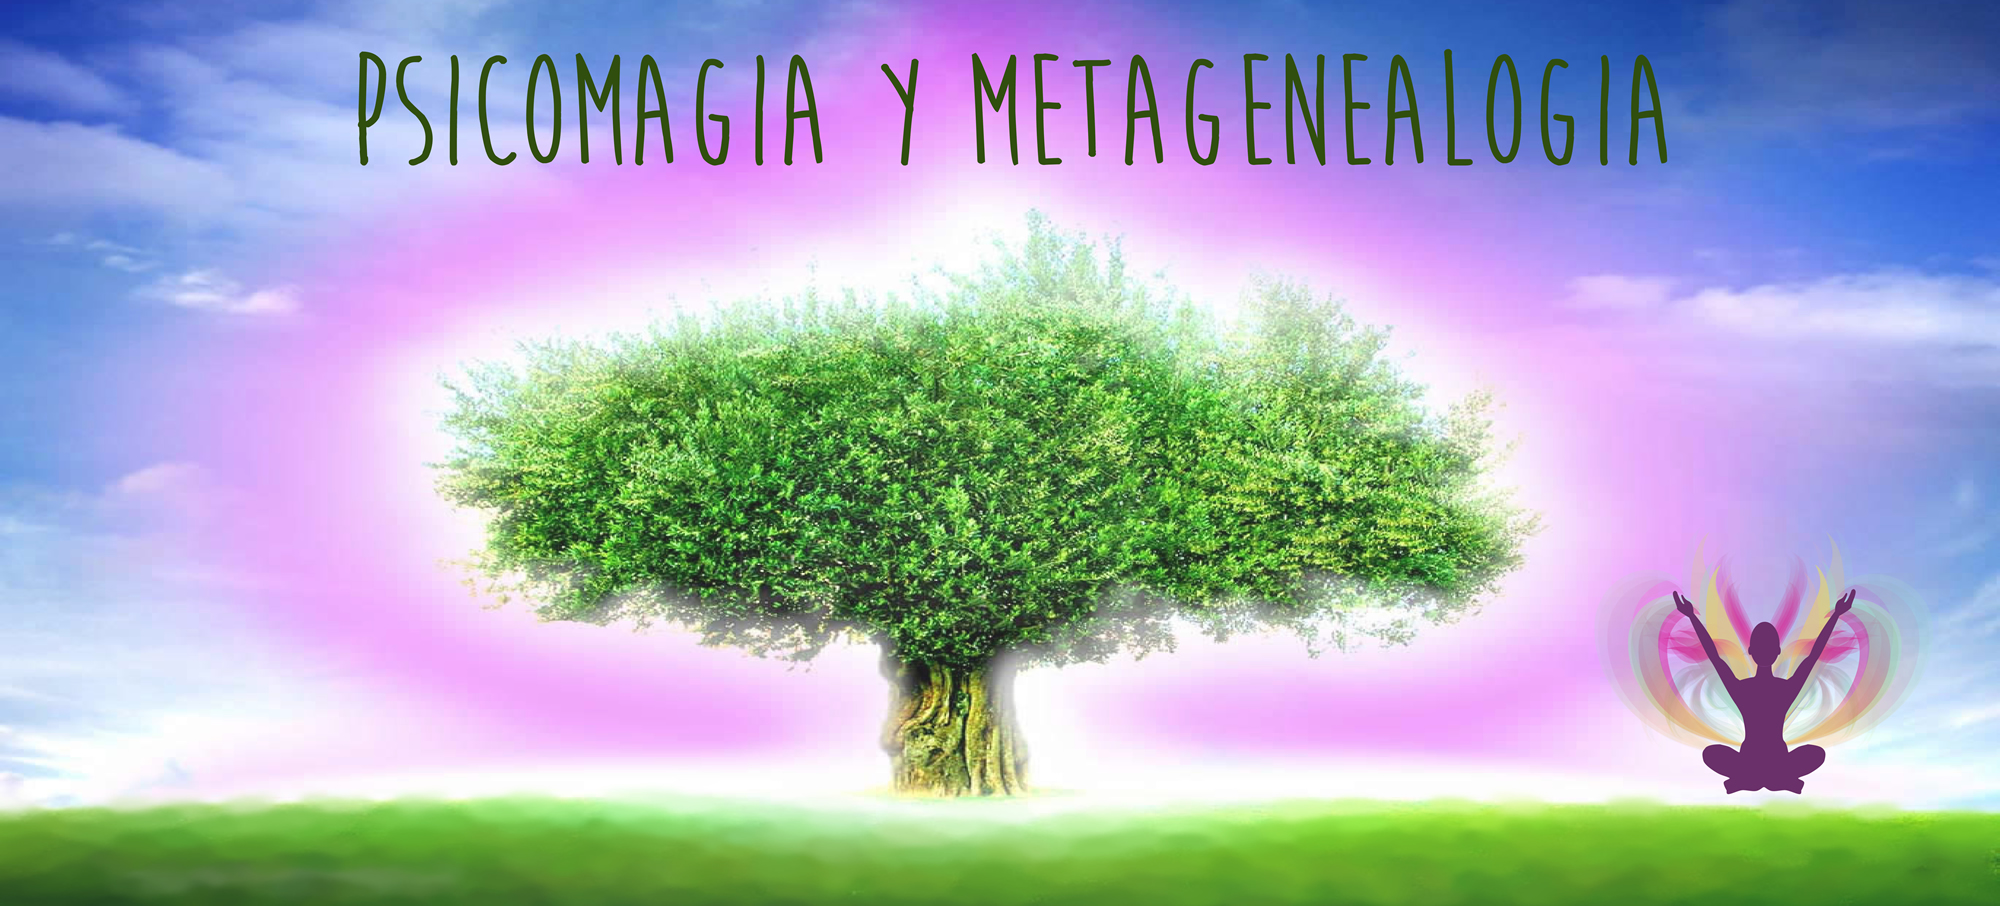 seccion psicomagia y metagenealogia-01